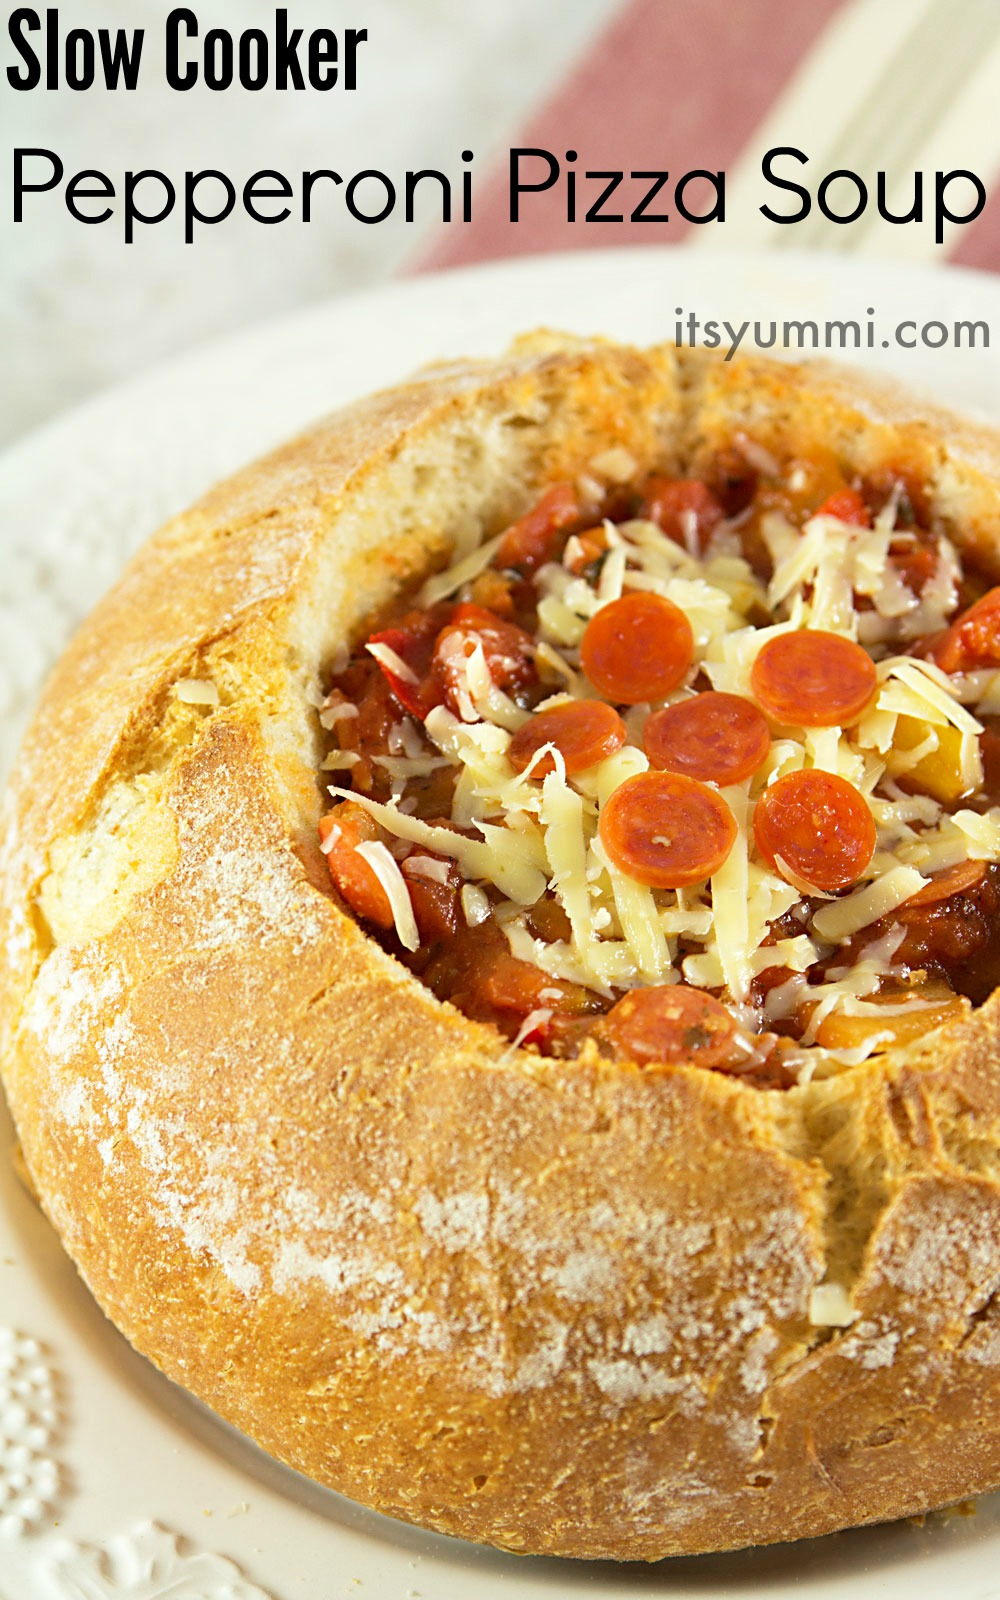 Slow Cooker Pizza Soup Recipe - from ItsYummi.com